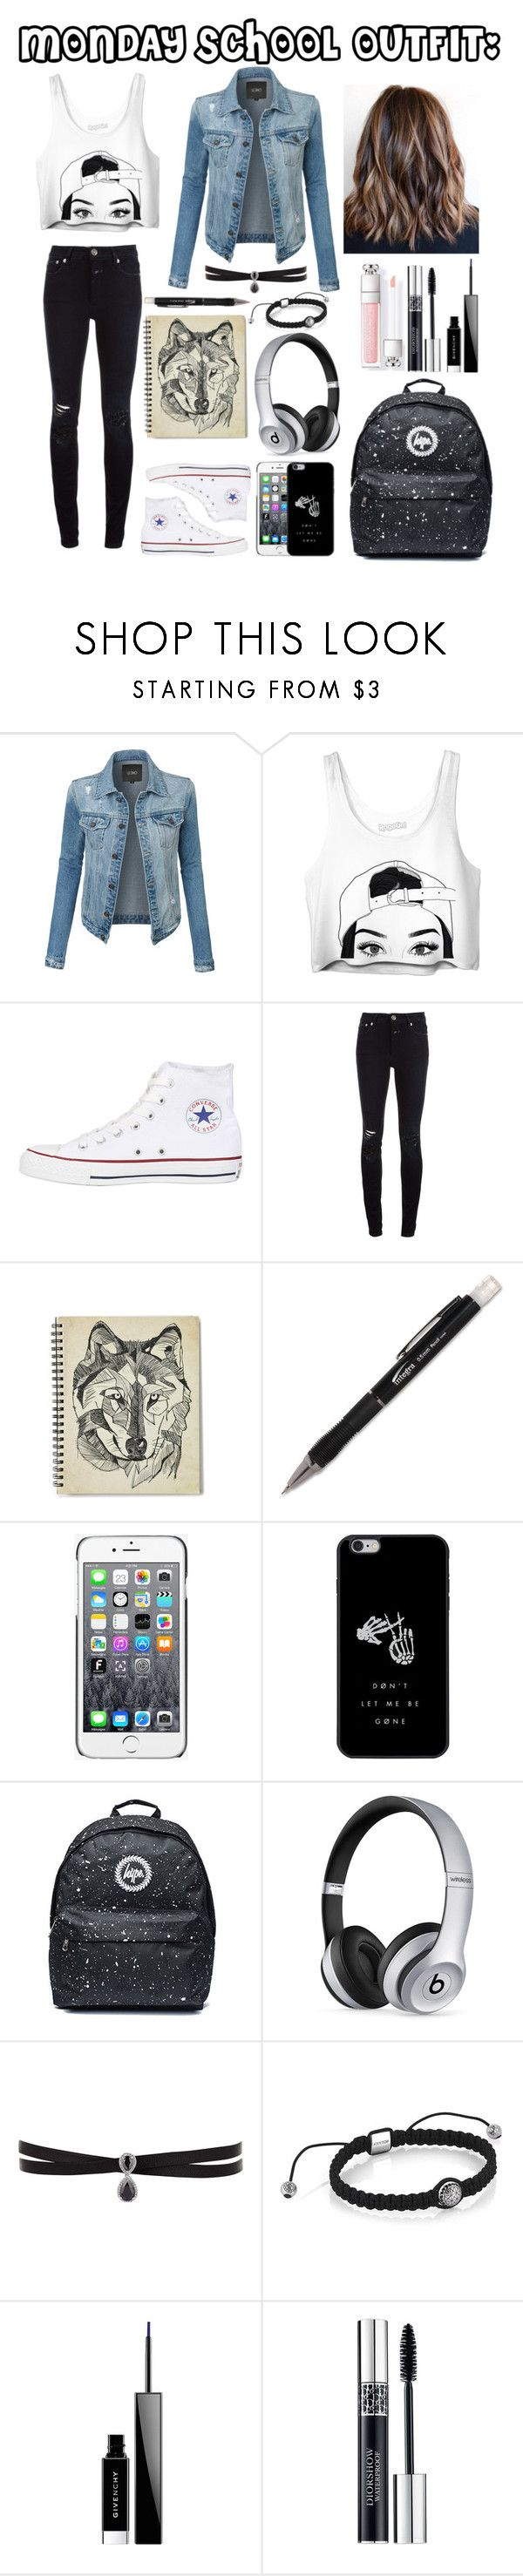 "1c8ff5f324bc43614d65080e9dfb0e47  beats by dre school outfits - ""Monday school outfit."" by yourlittledemonx3 on Polyvore featuring LE3NO, Conver..."